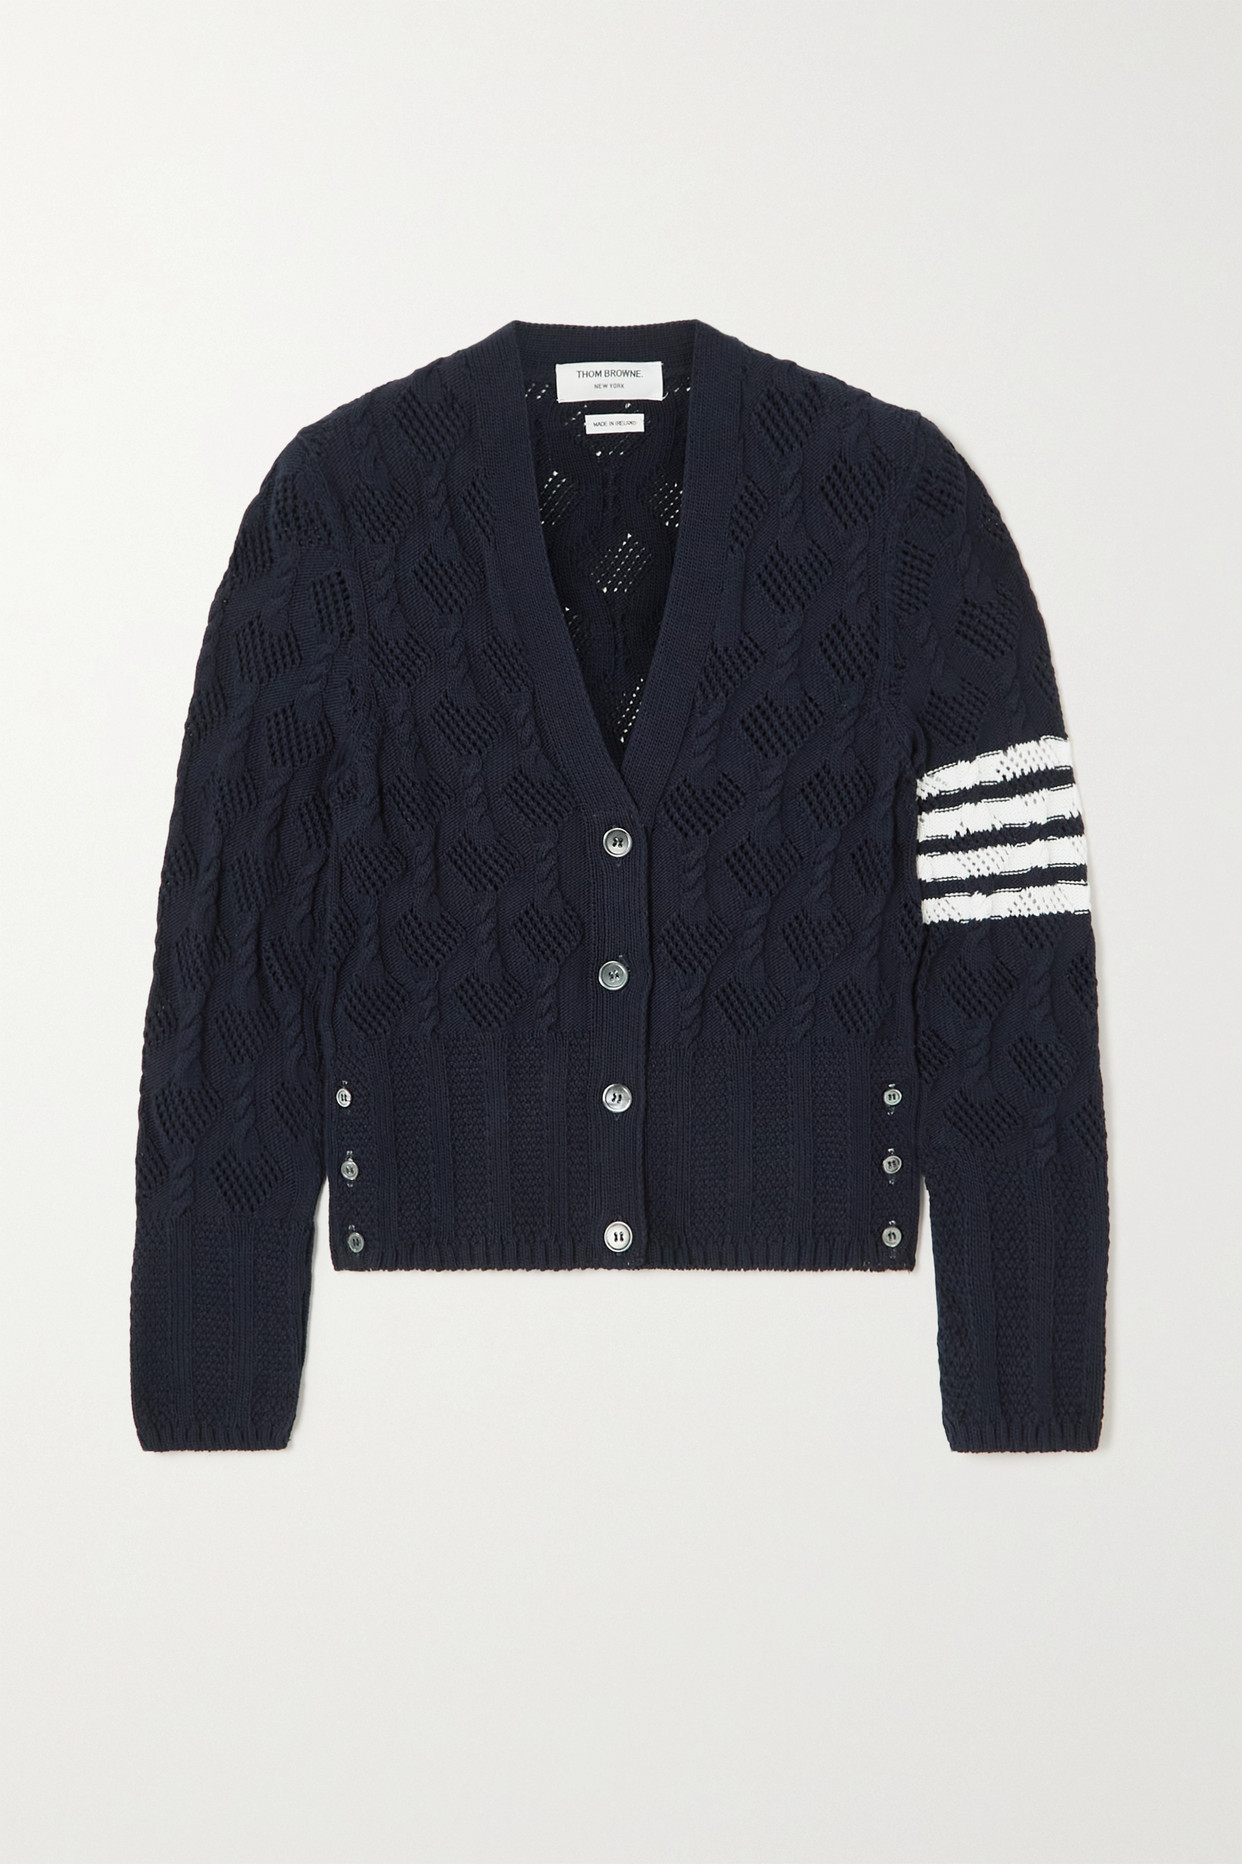 THOM BROWNE - Striped Pointelle And Cable-knit Cotton Cardigan - Blue - IT36